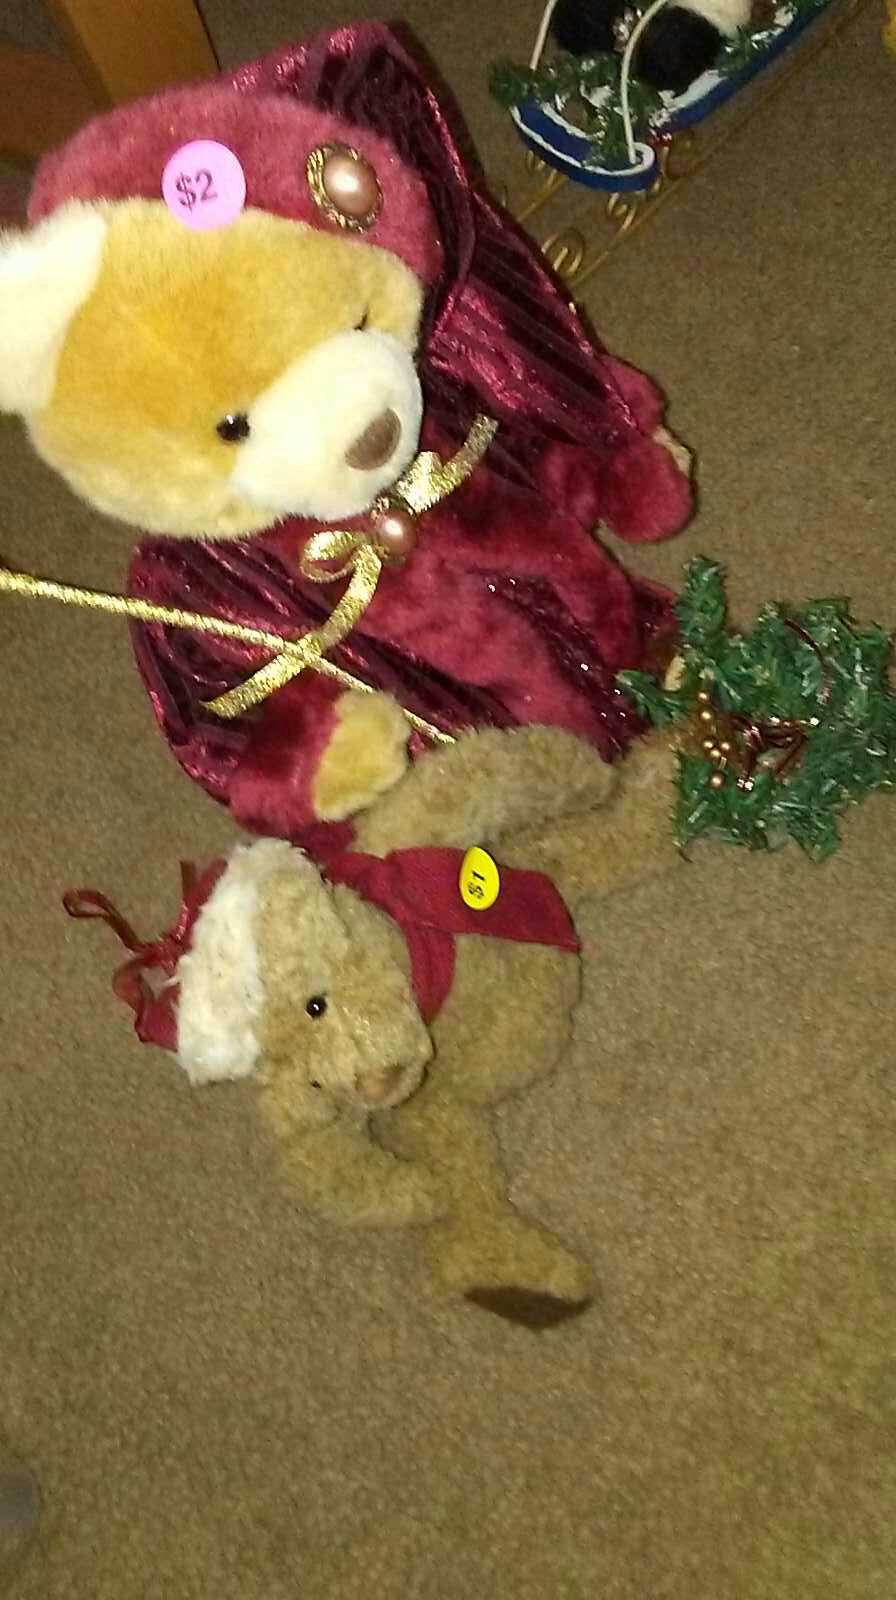 Teddy Bear tree topper $2 and teddy bear ornament $1 non-smoking home porch pick up